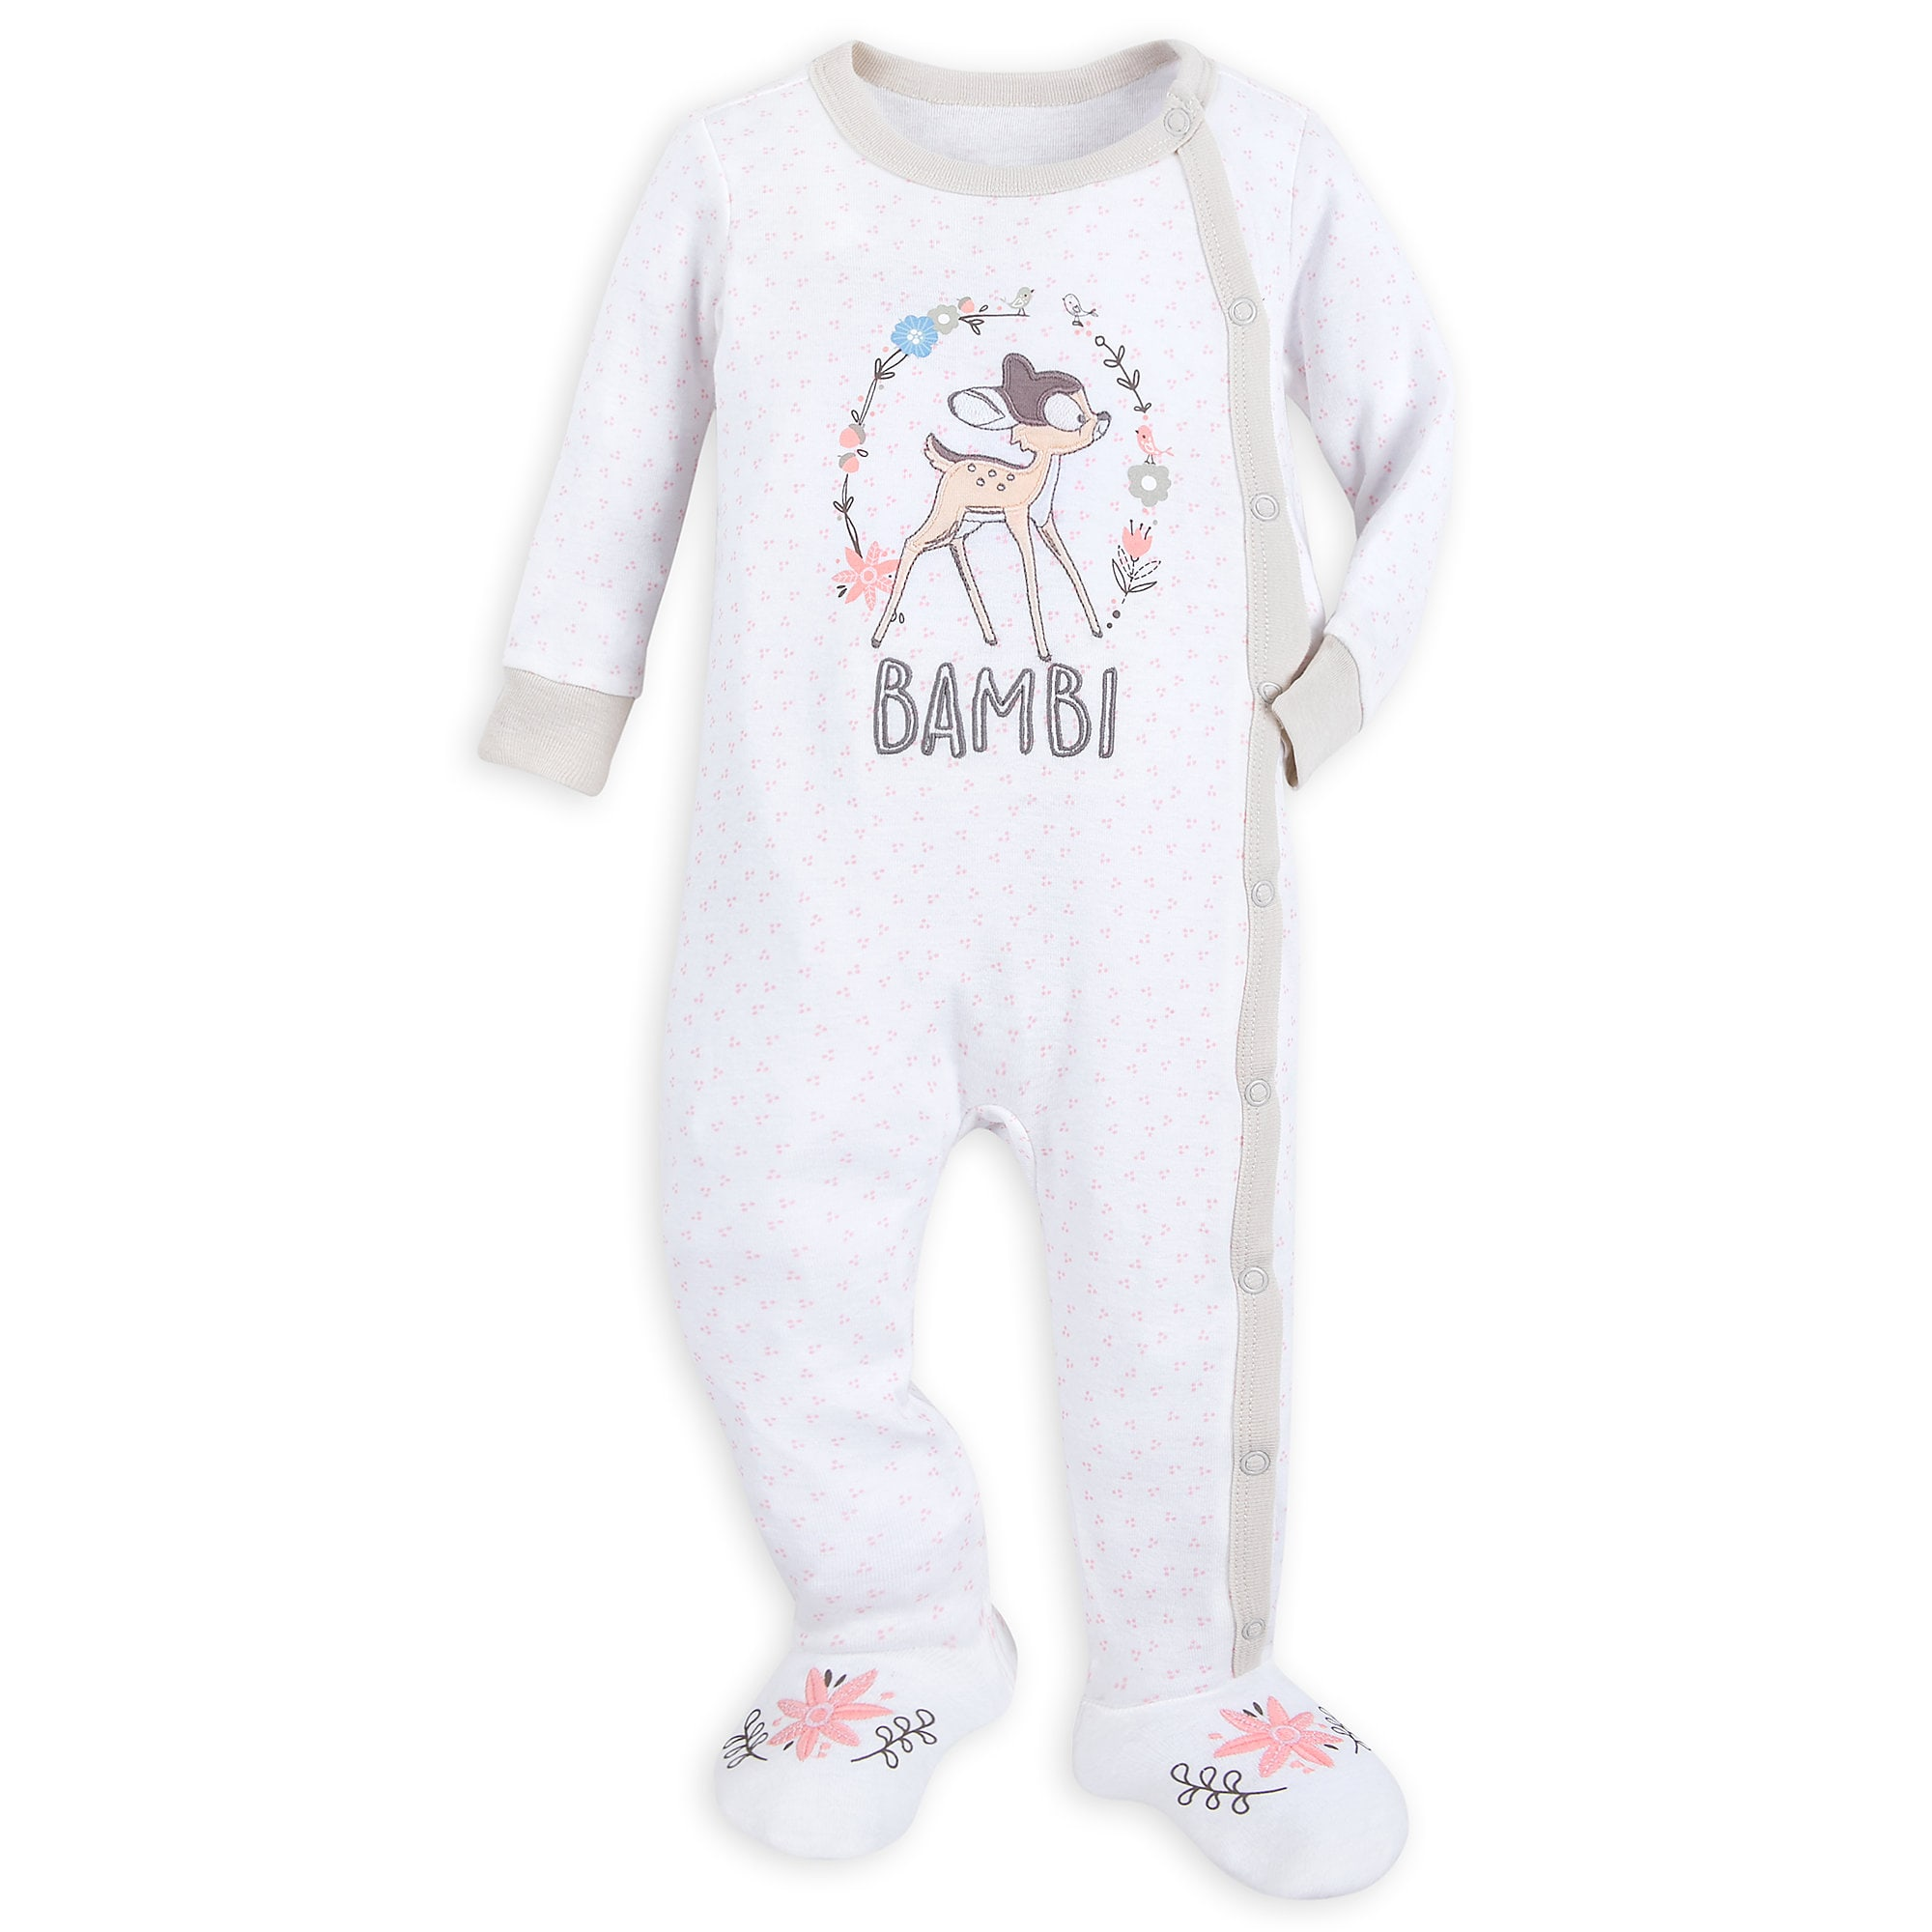 Bambi Stretchie for Baby